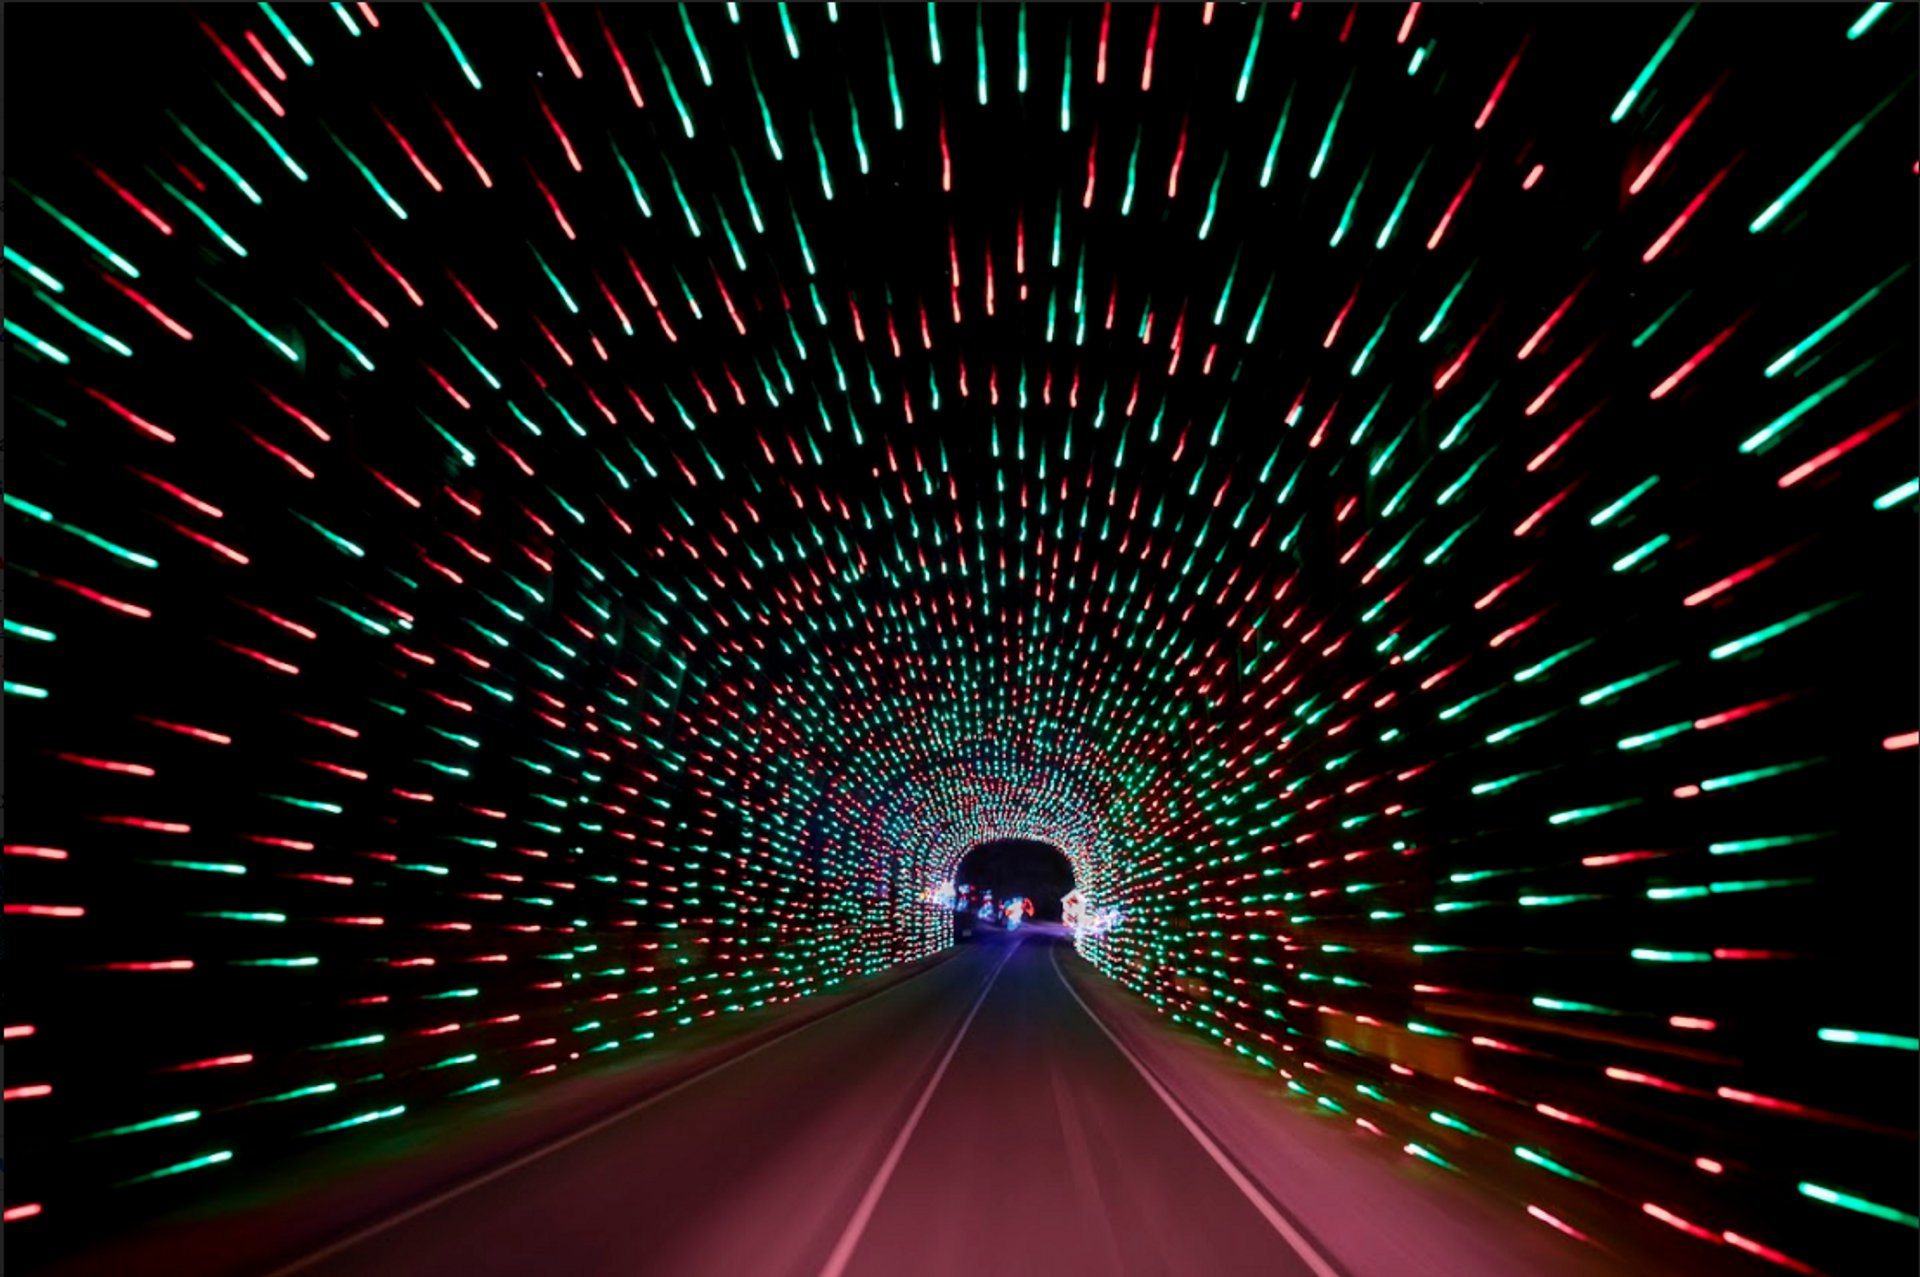 Tanglewood Park Festival of Lights in North Carolina 2020 - Best Time